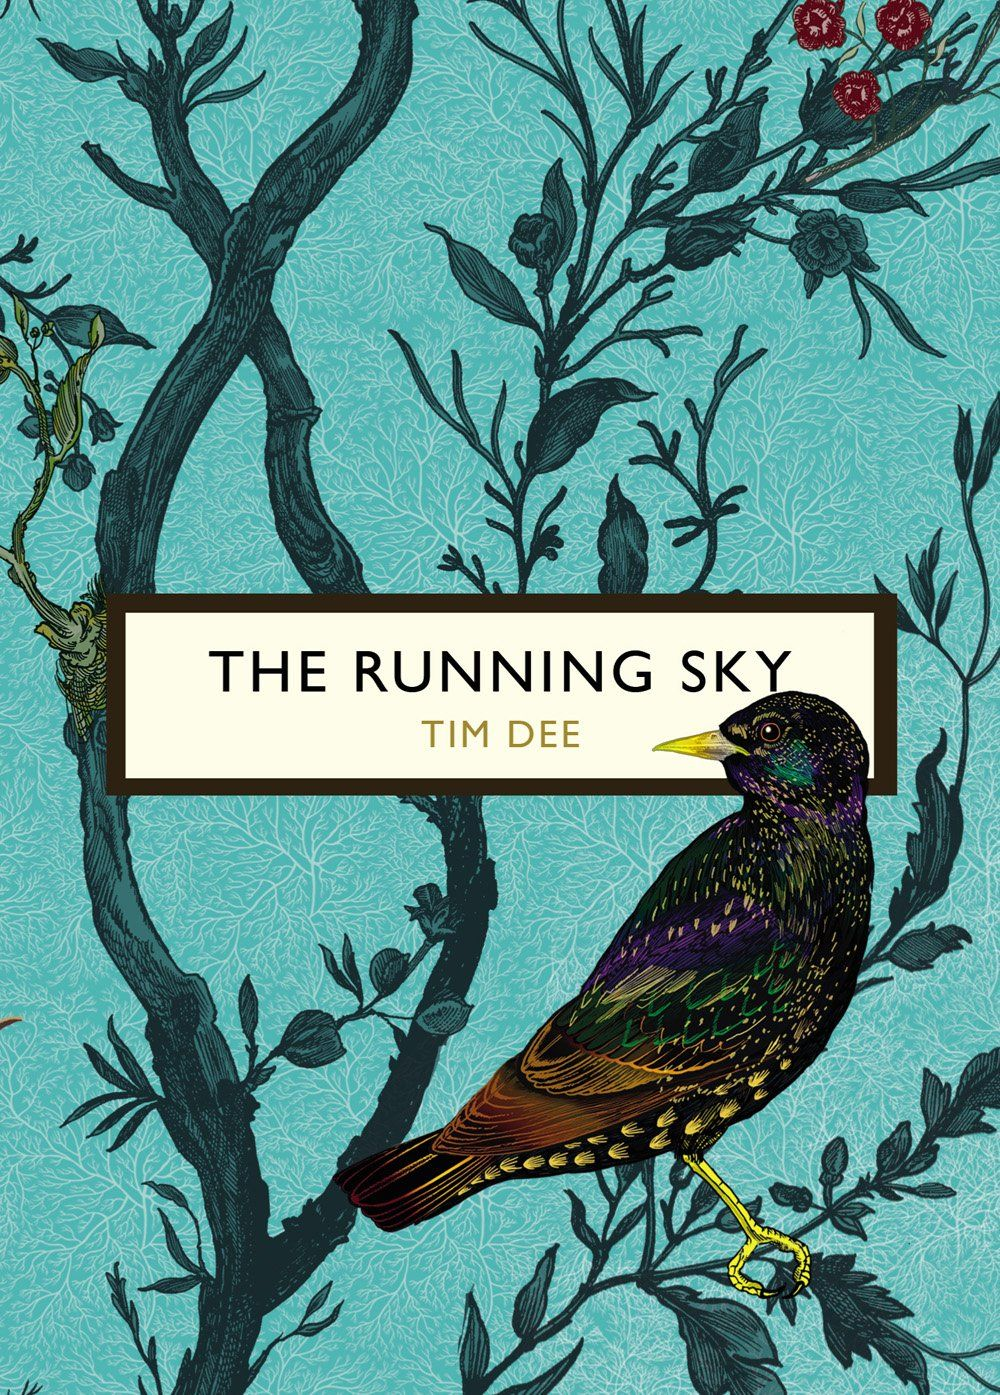 The Running Sky, Tim Dee, Timorous Beasties